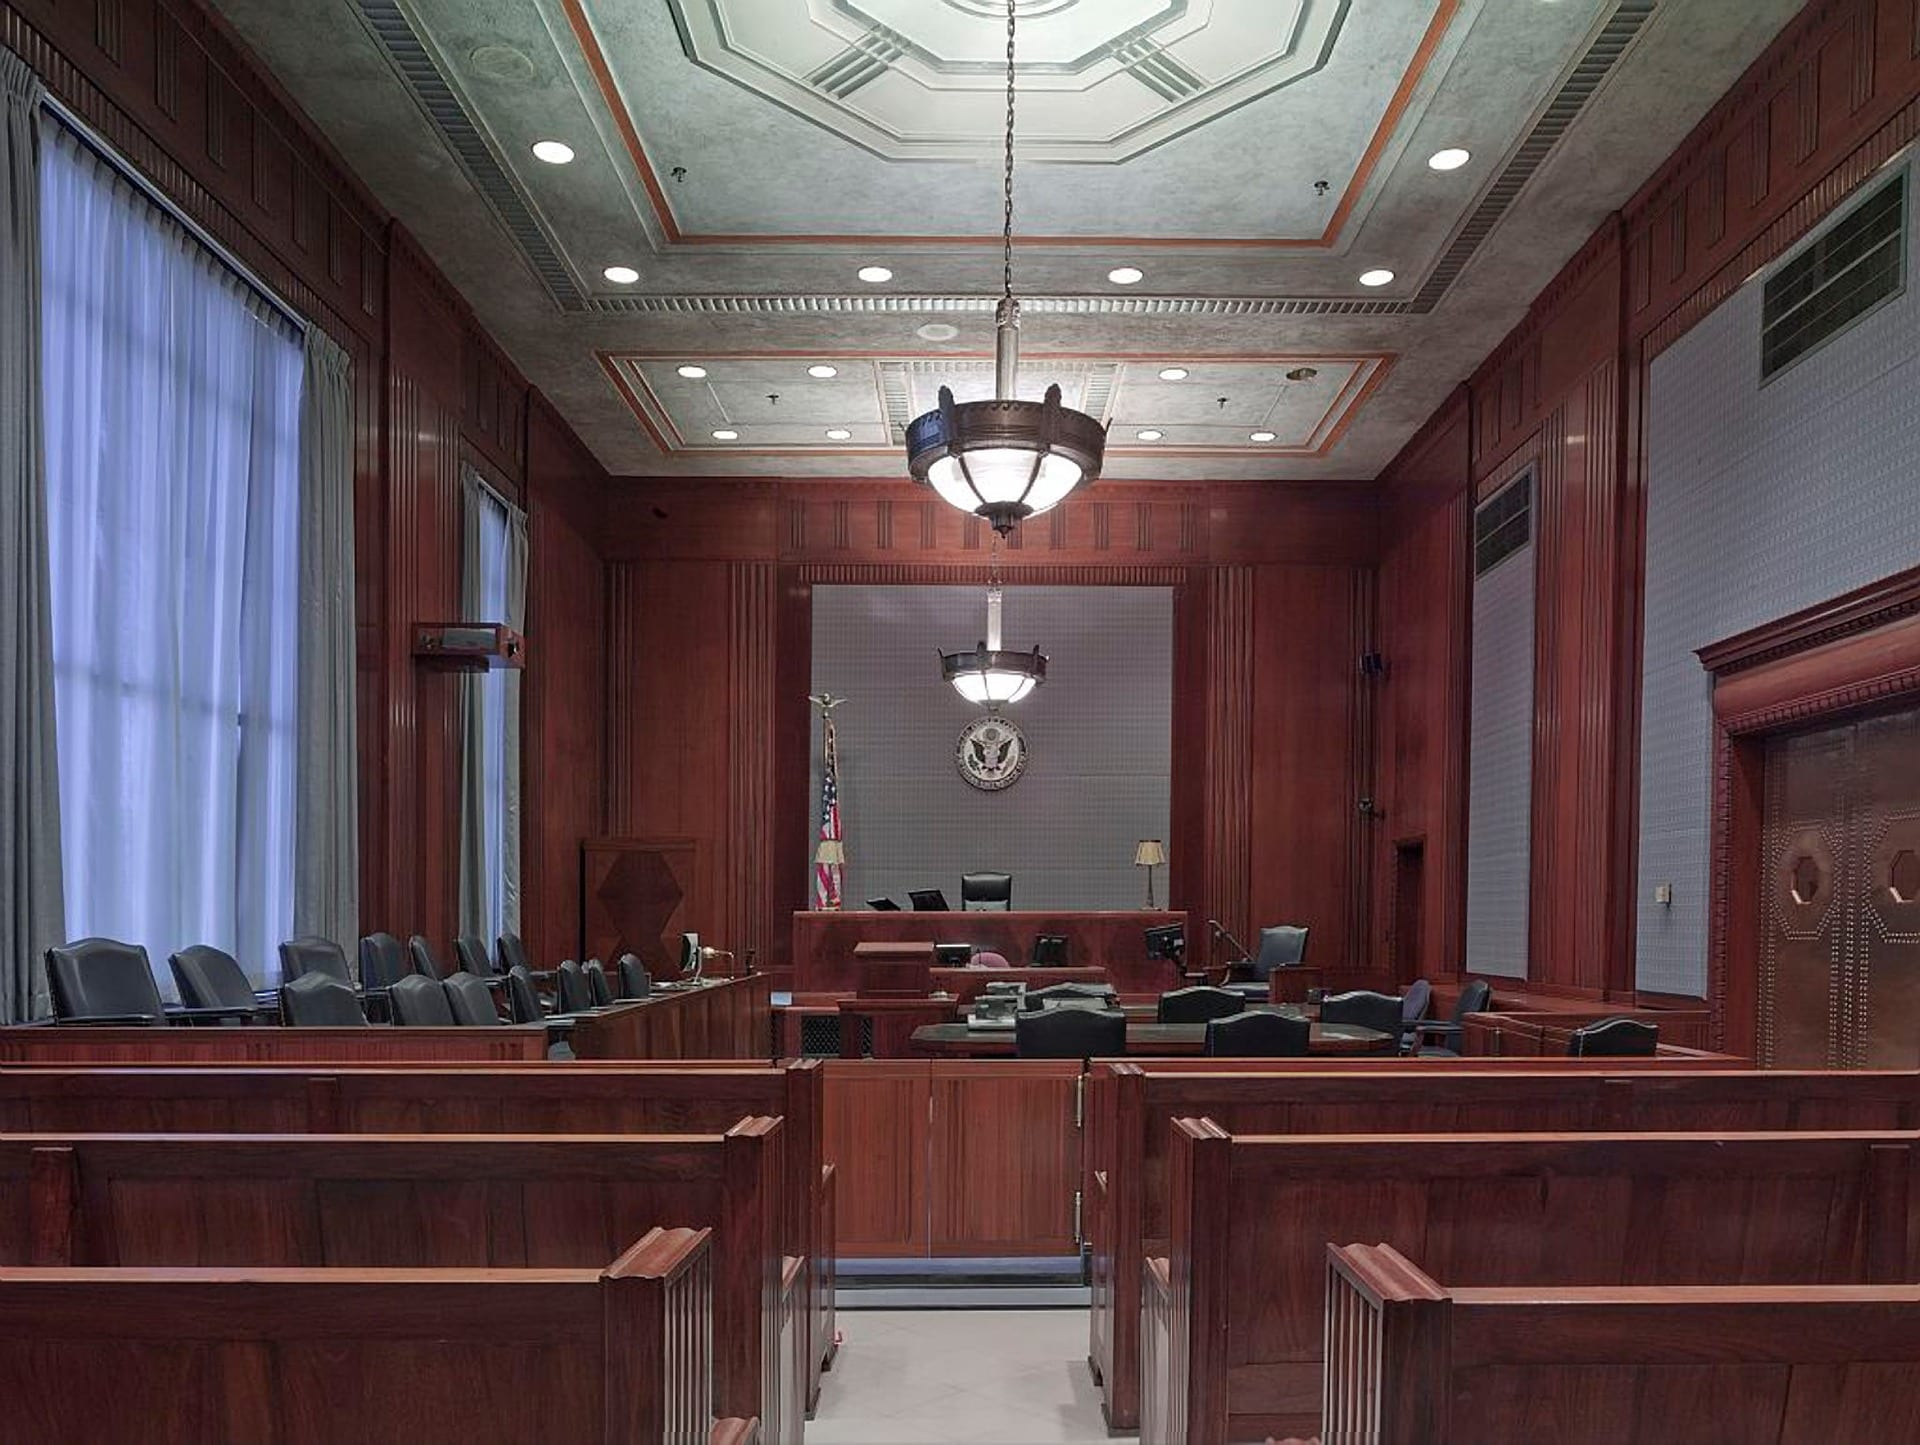 Landmark million dollar medical malpractice jury verdict in Tennessee